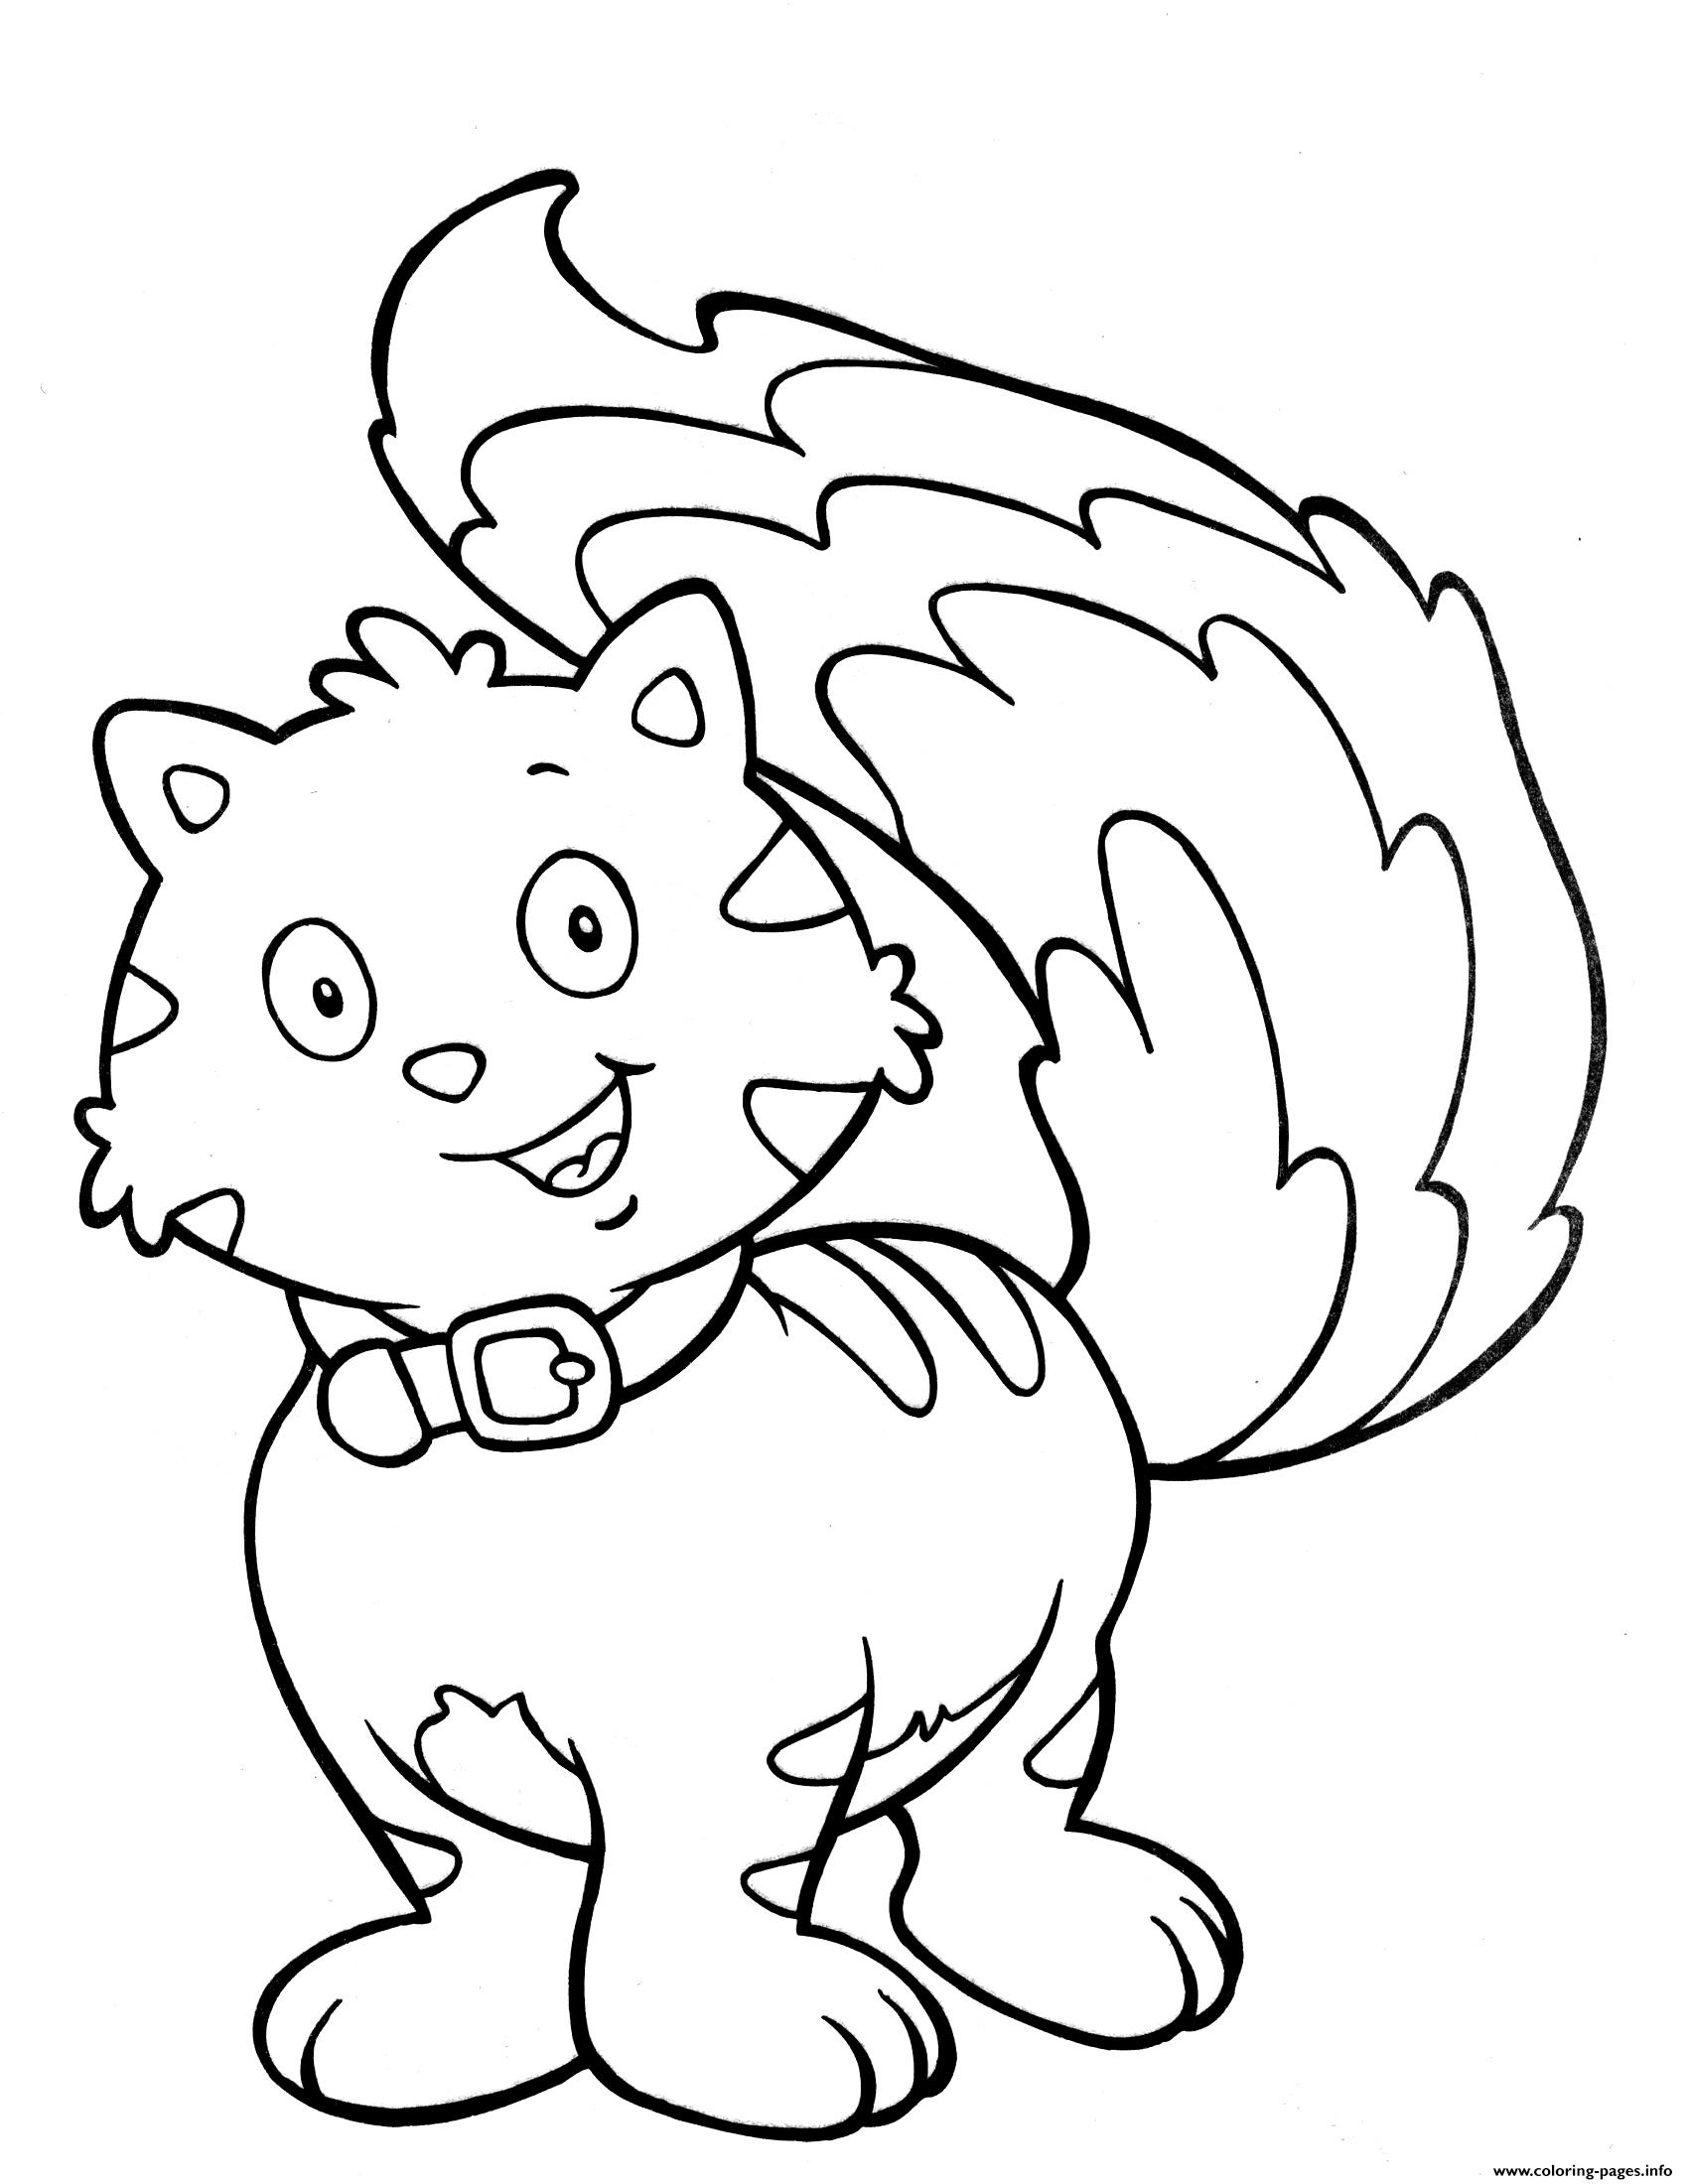 Crayola Cute Cat Coloring Pages Printable